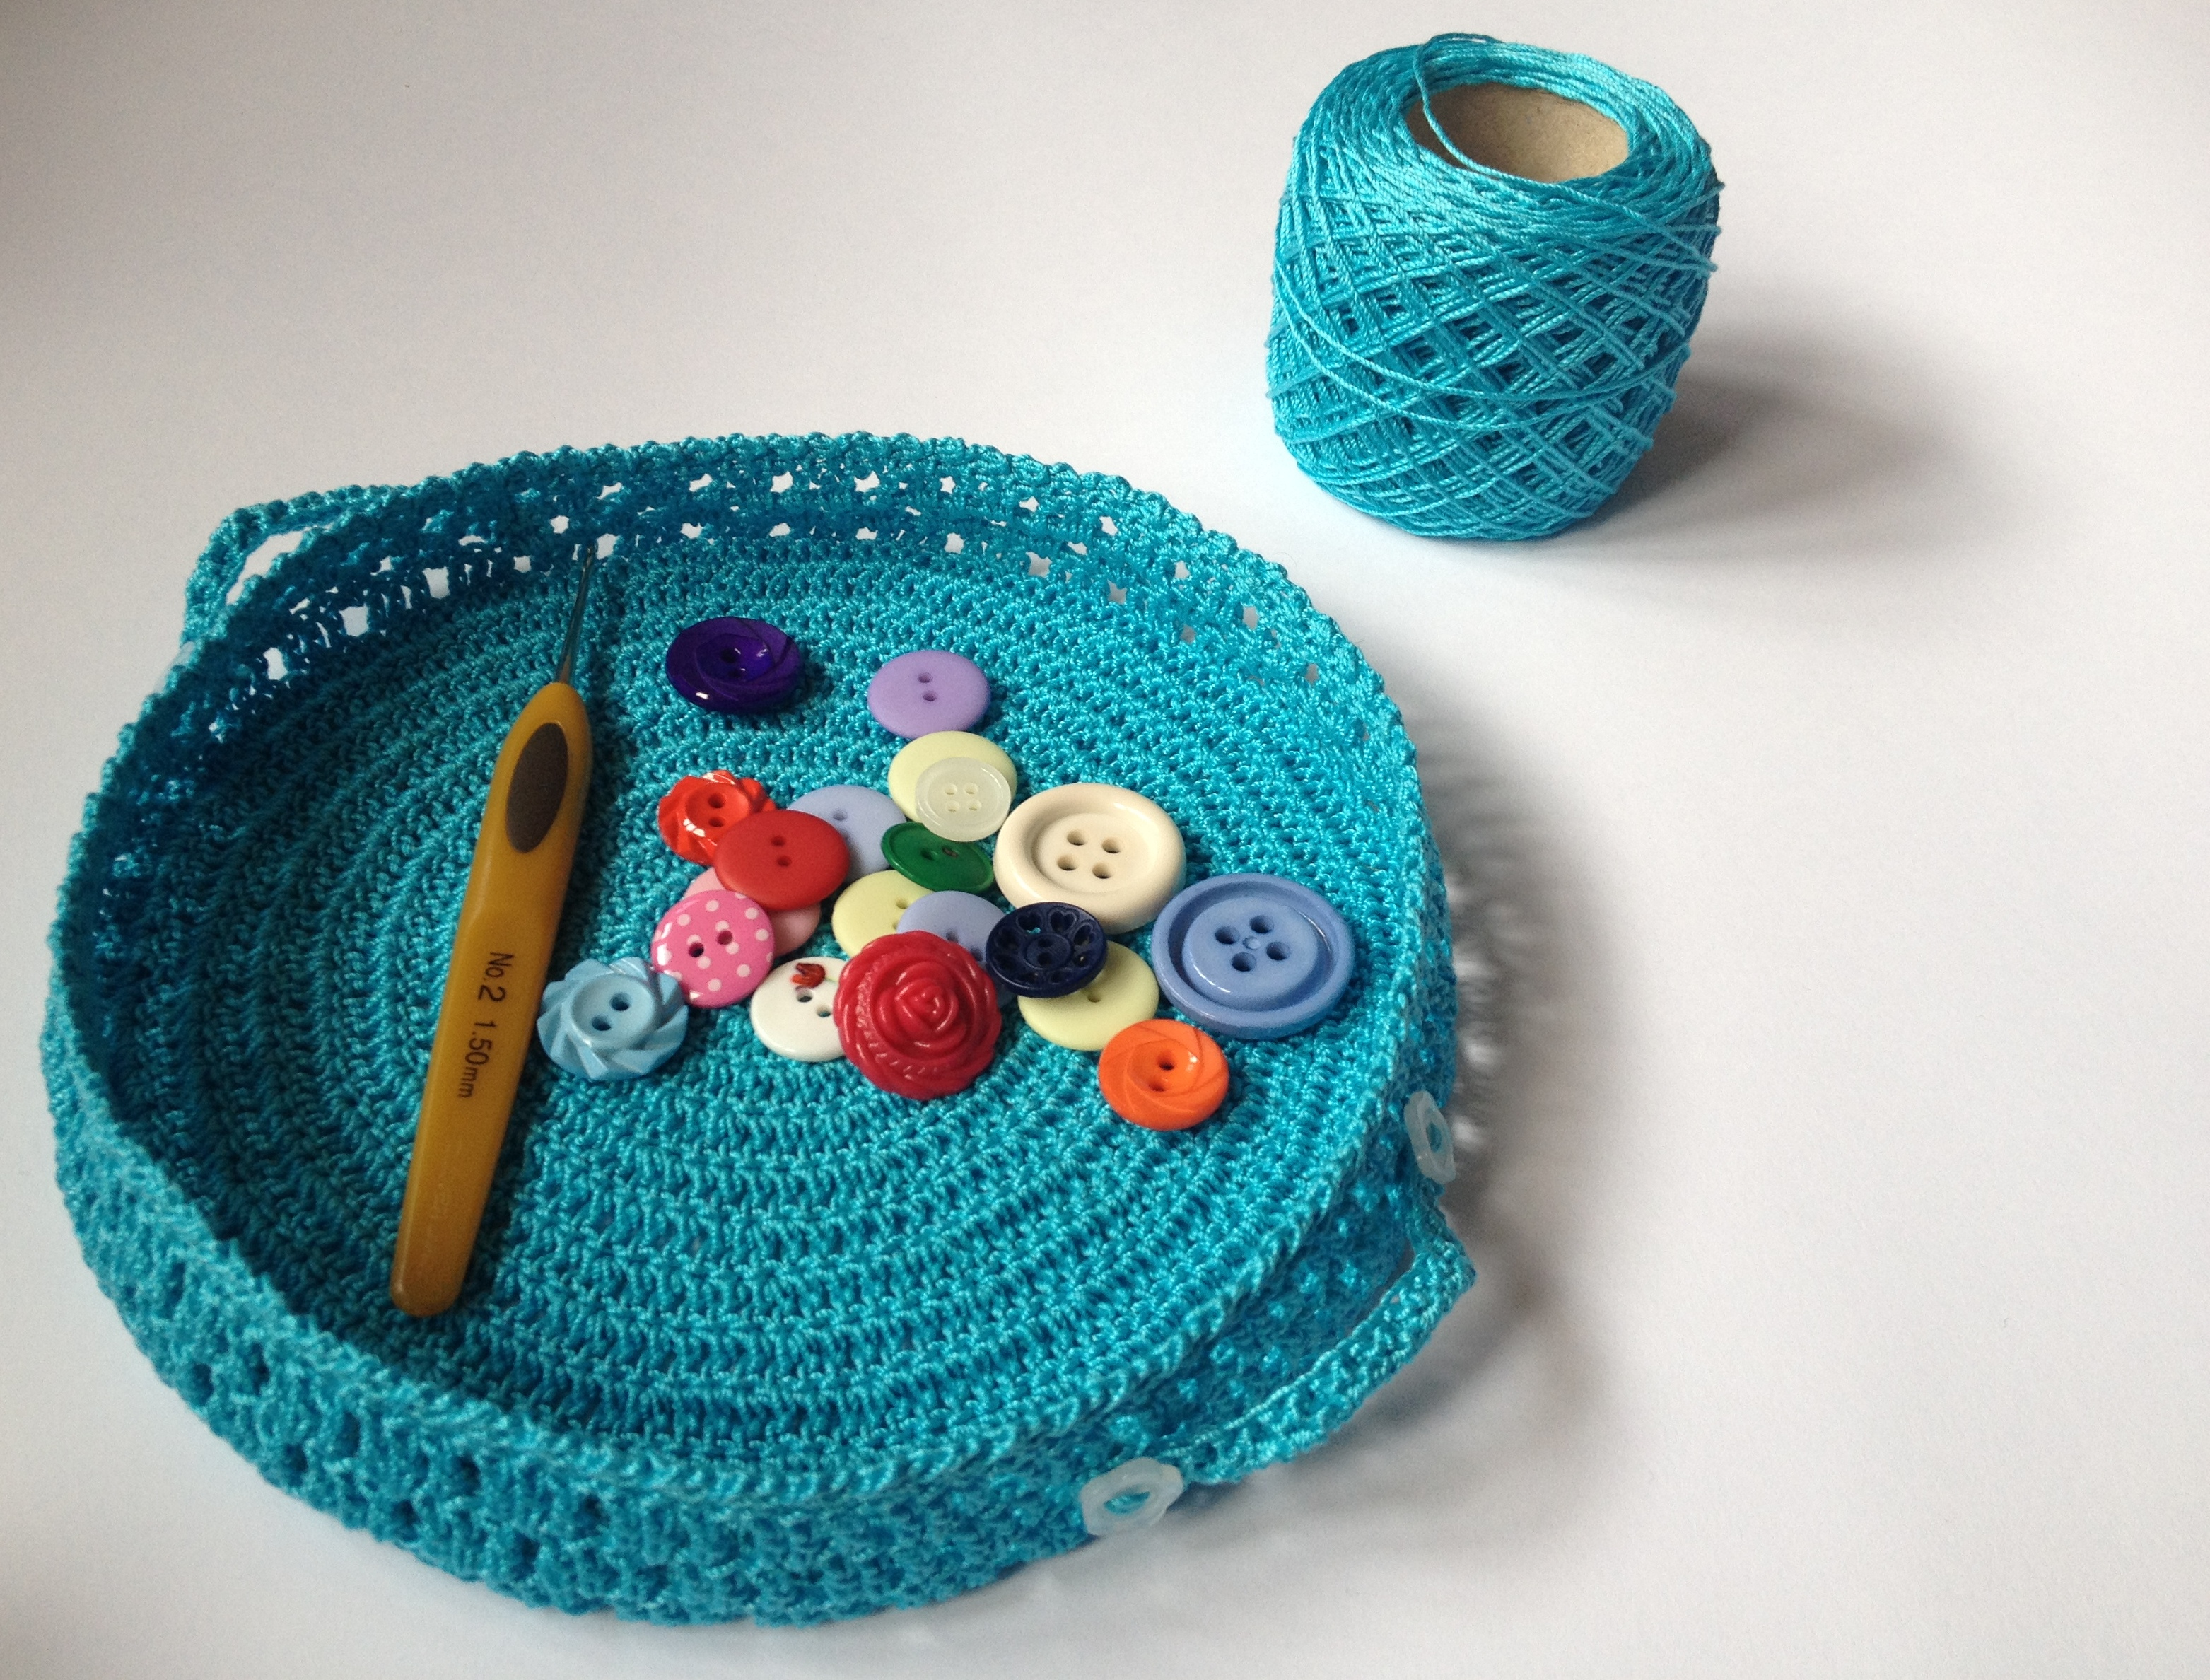 Crochet Baskets Crochetime